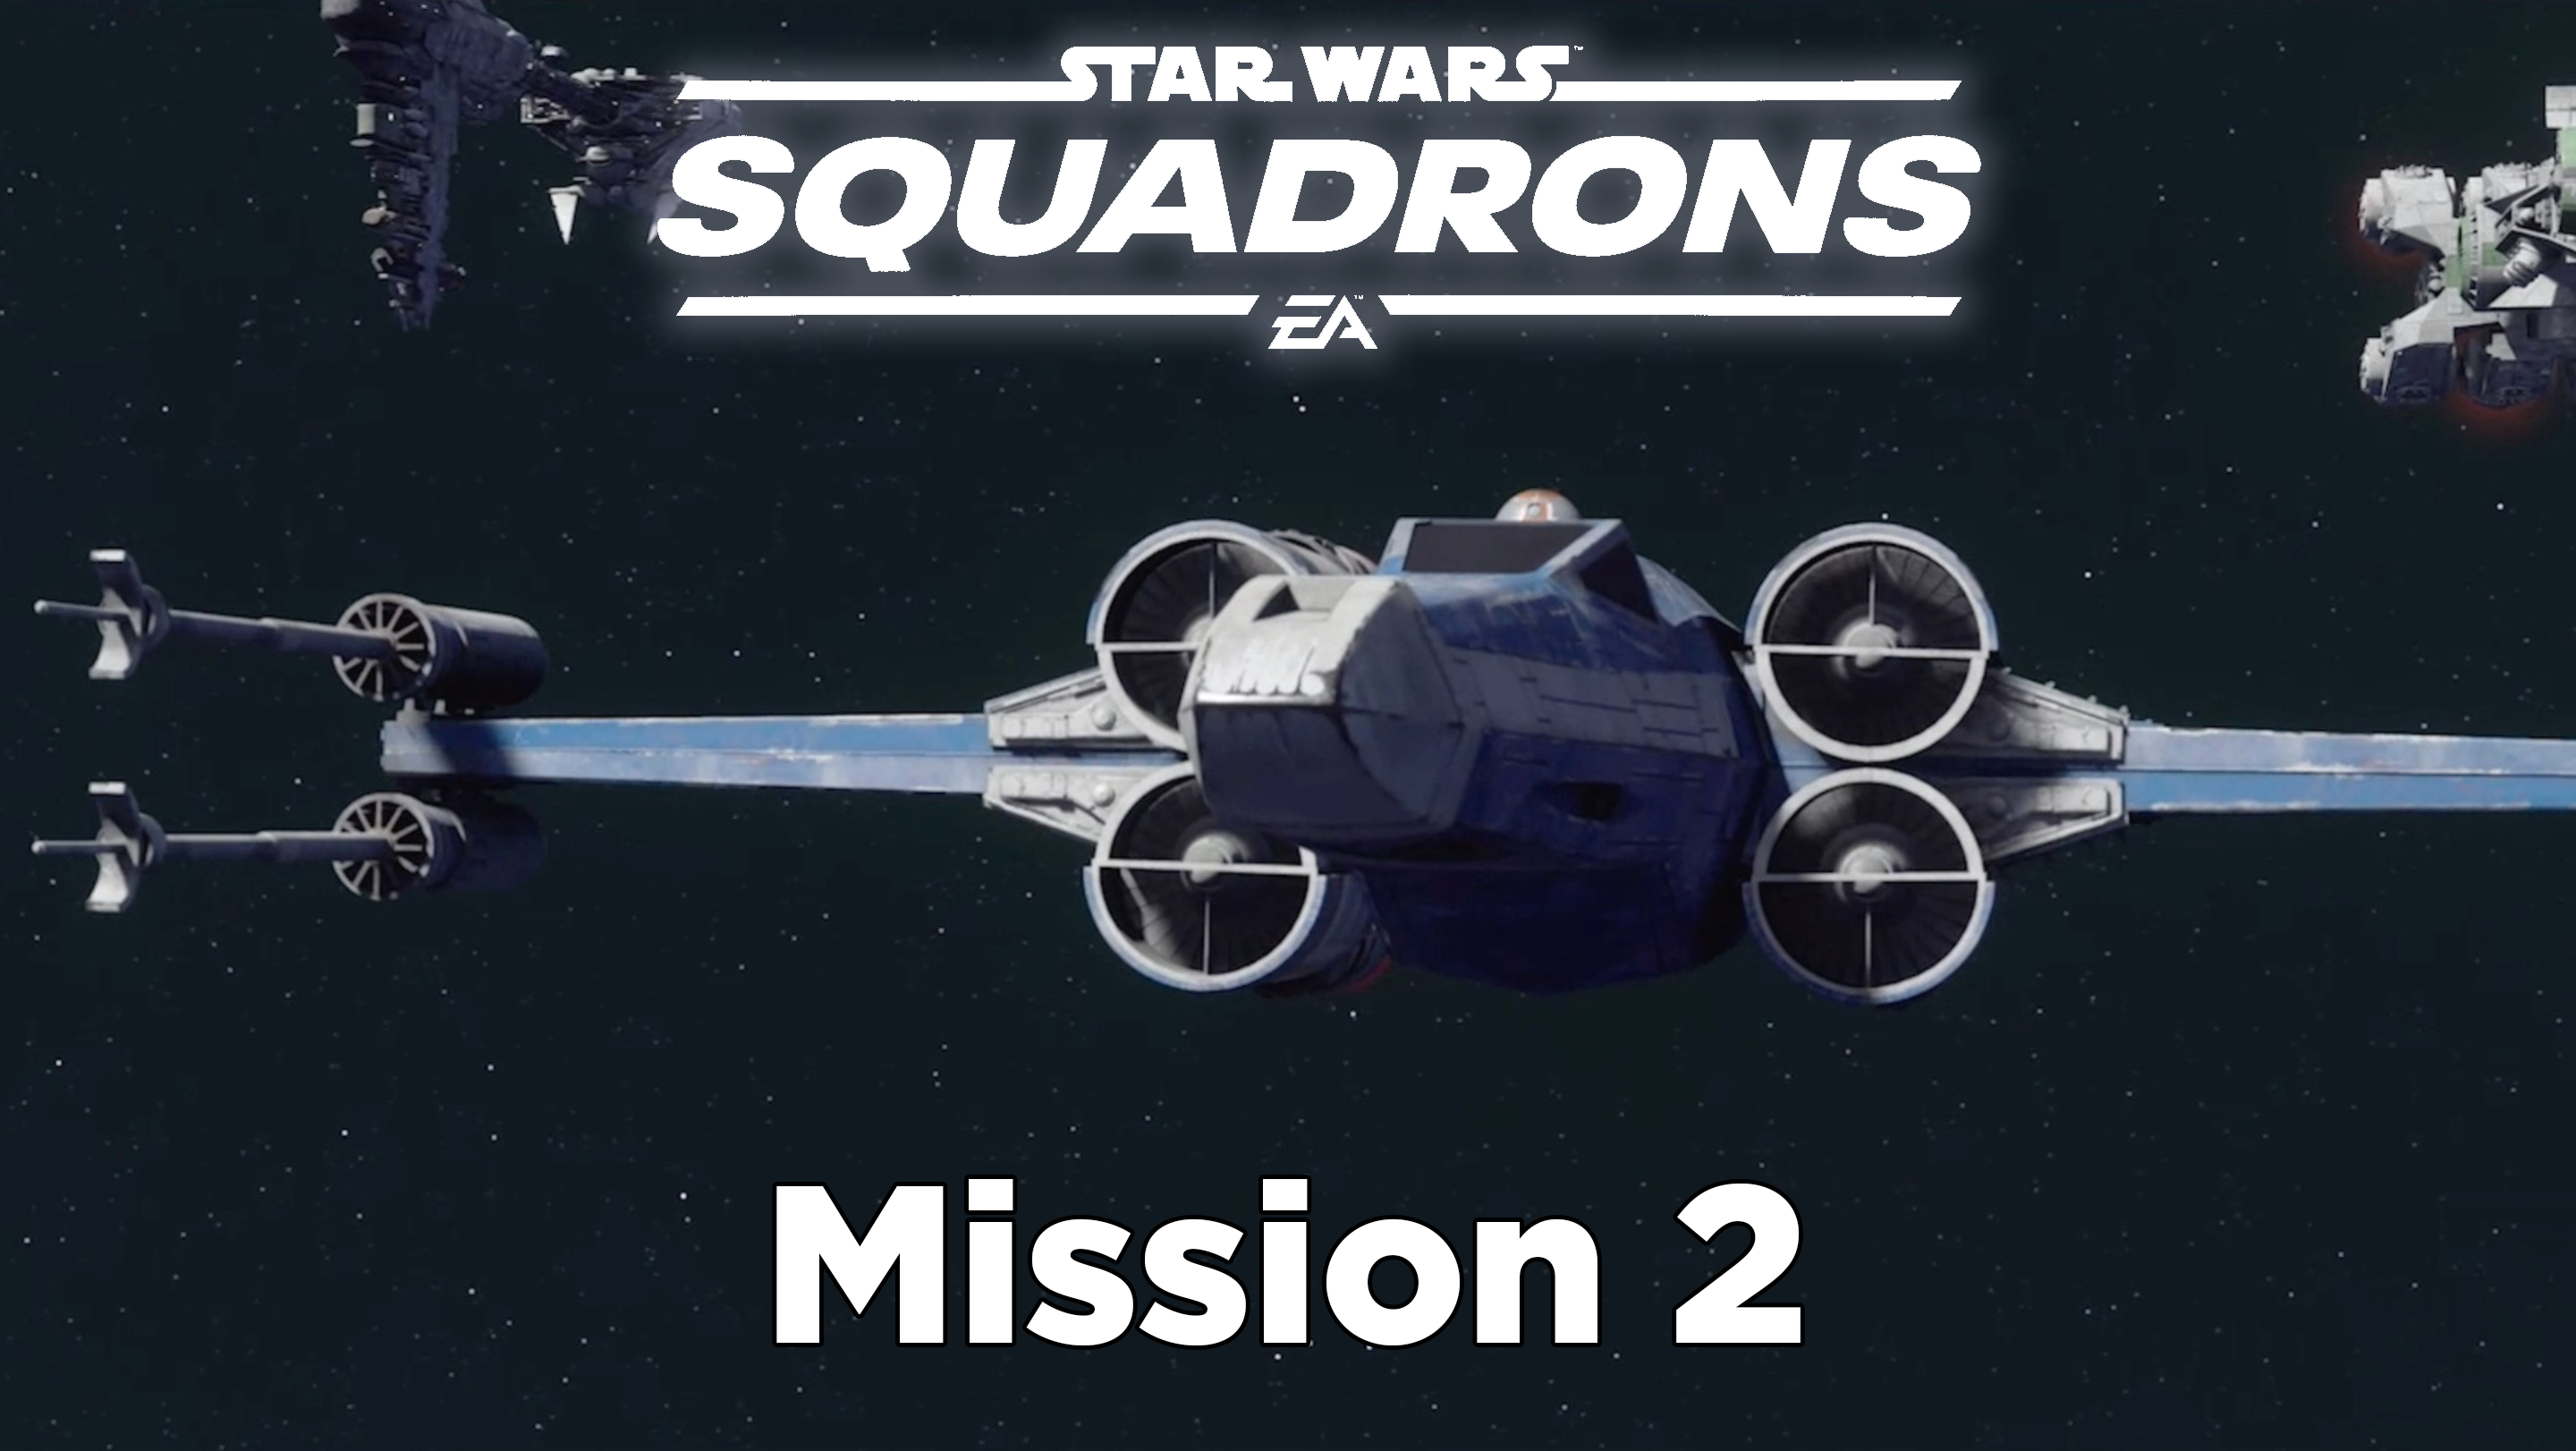 Star Wars Squadrons guide: Mission 2 – The Skies of Yavin tips and walkthrough